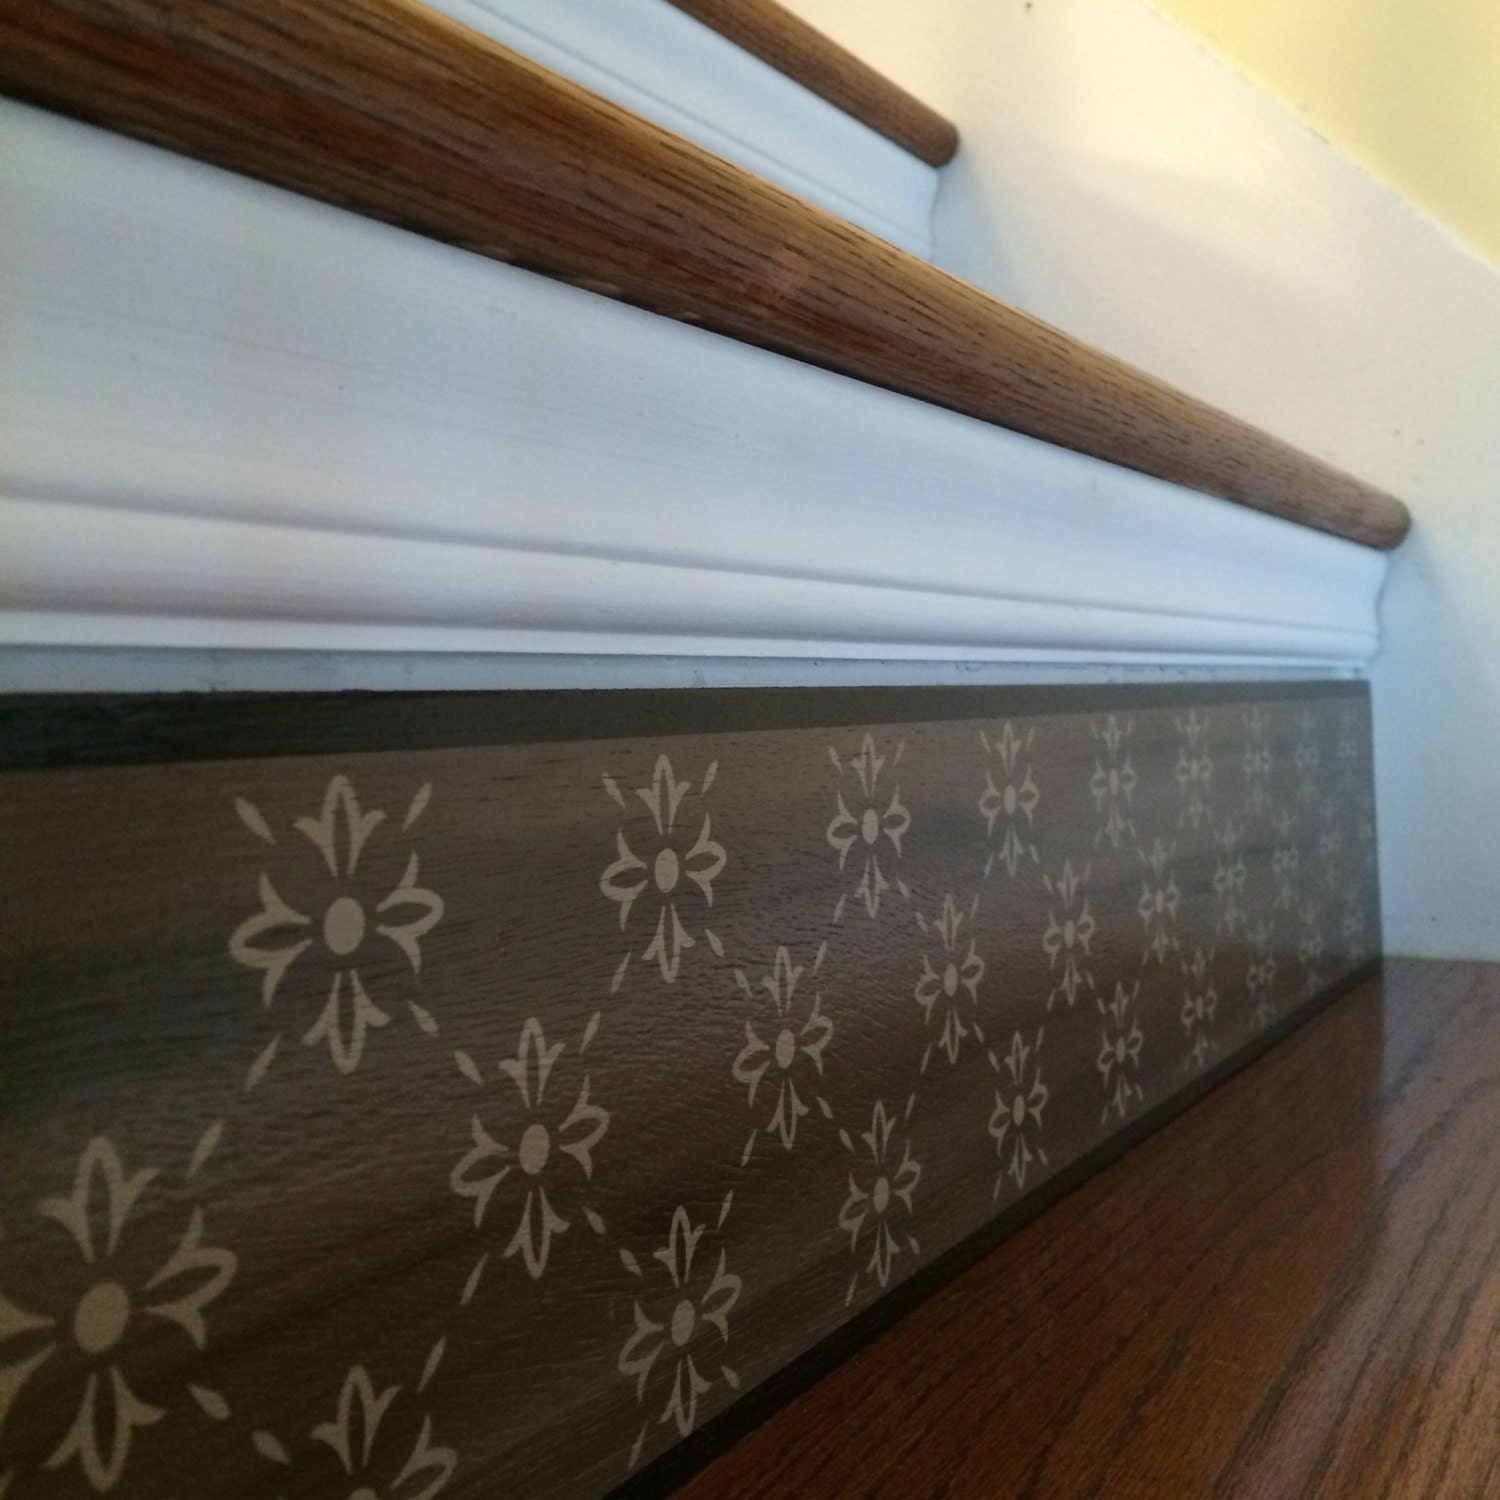 Carved Wood Stair Risers Stair Ideas Stamped Leather: Alternative To Stair Riser Decals Stair Stencils And Stair